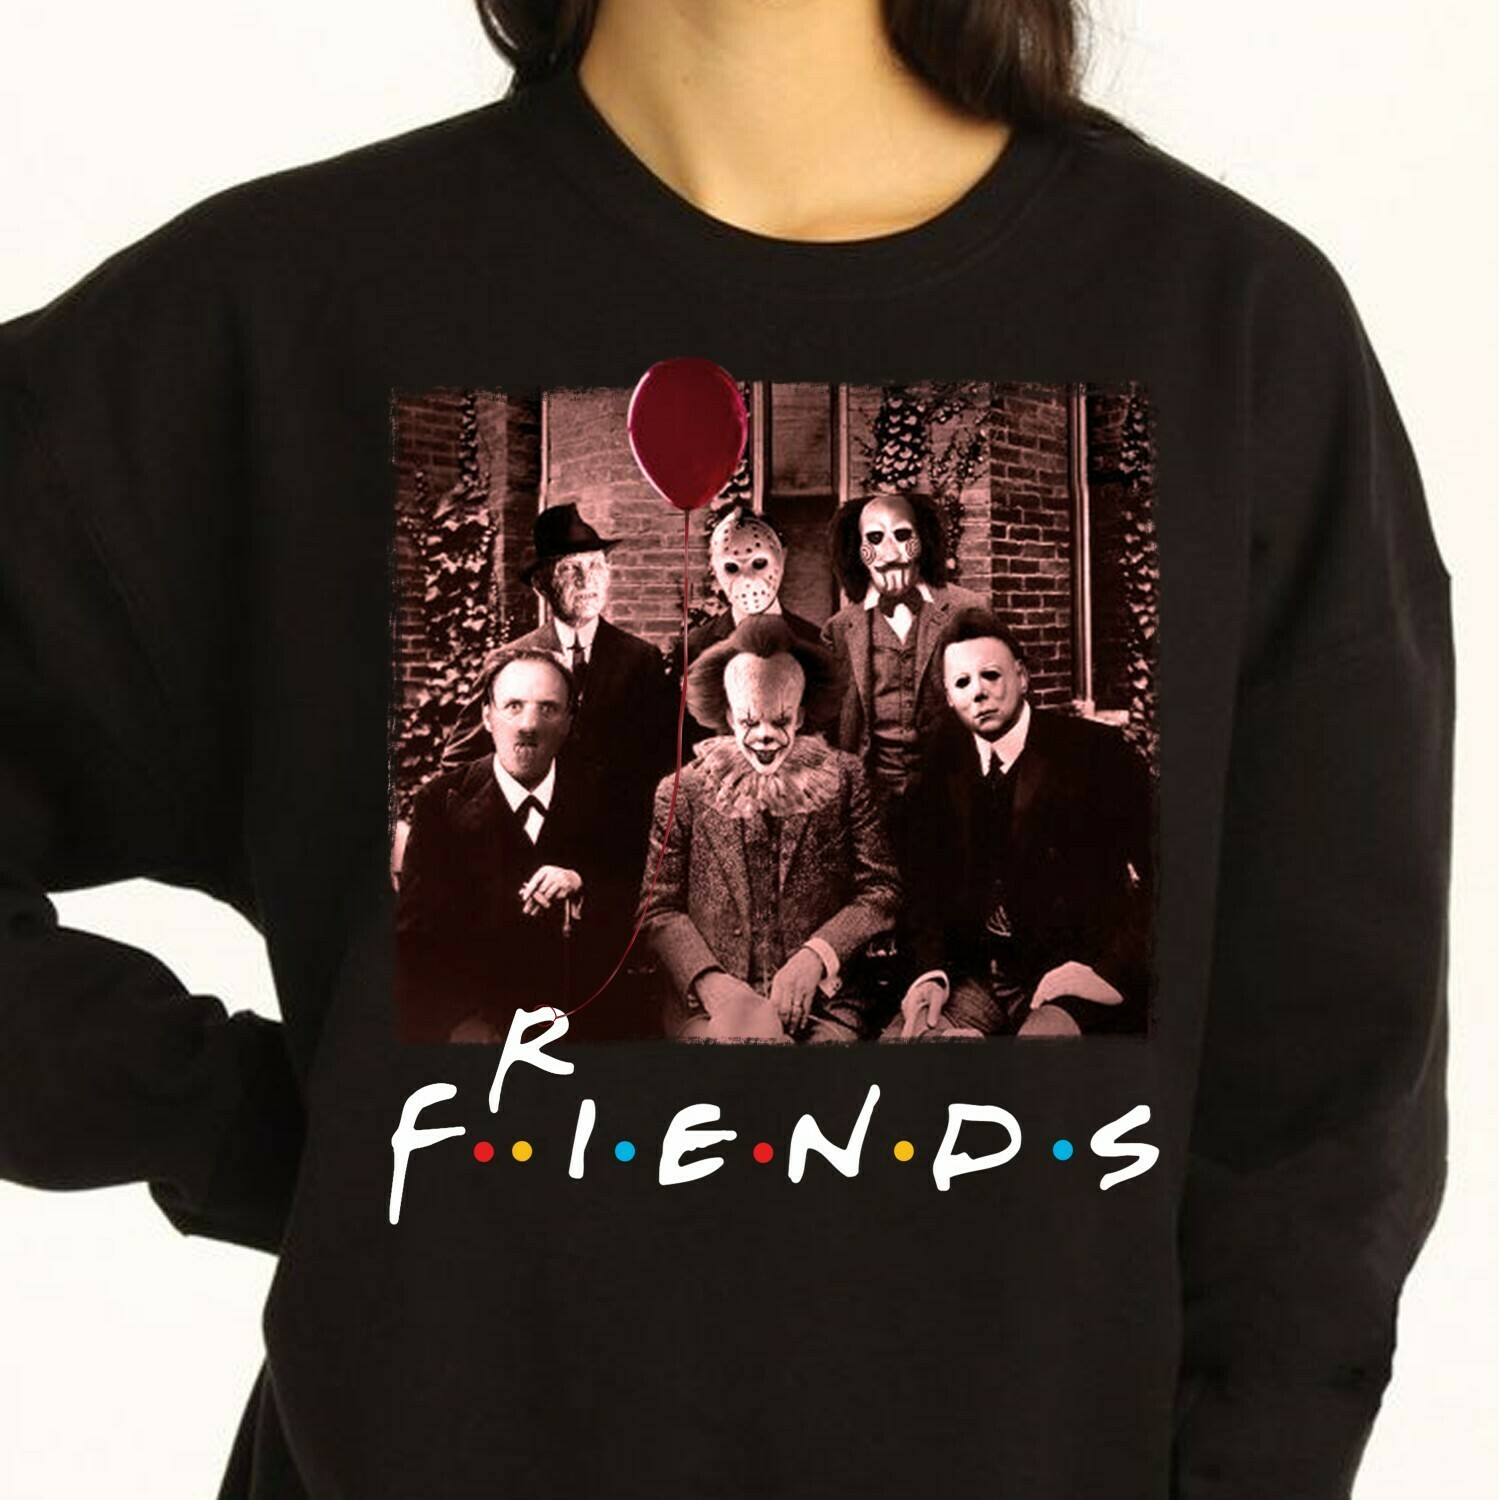 Friends IT Pennywise We All Float Down Here Squad Friday The 13th Villains Halloween Horror movie mashup Halloween squad tee T Shirt Long Sleeve Sweatshirt Hoodie Jolly Family Gifts